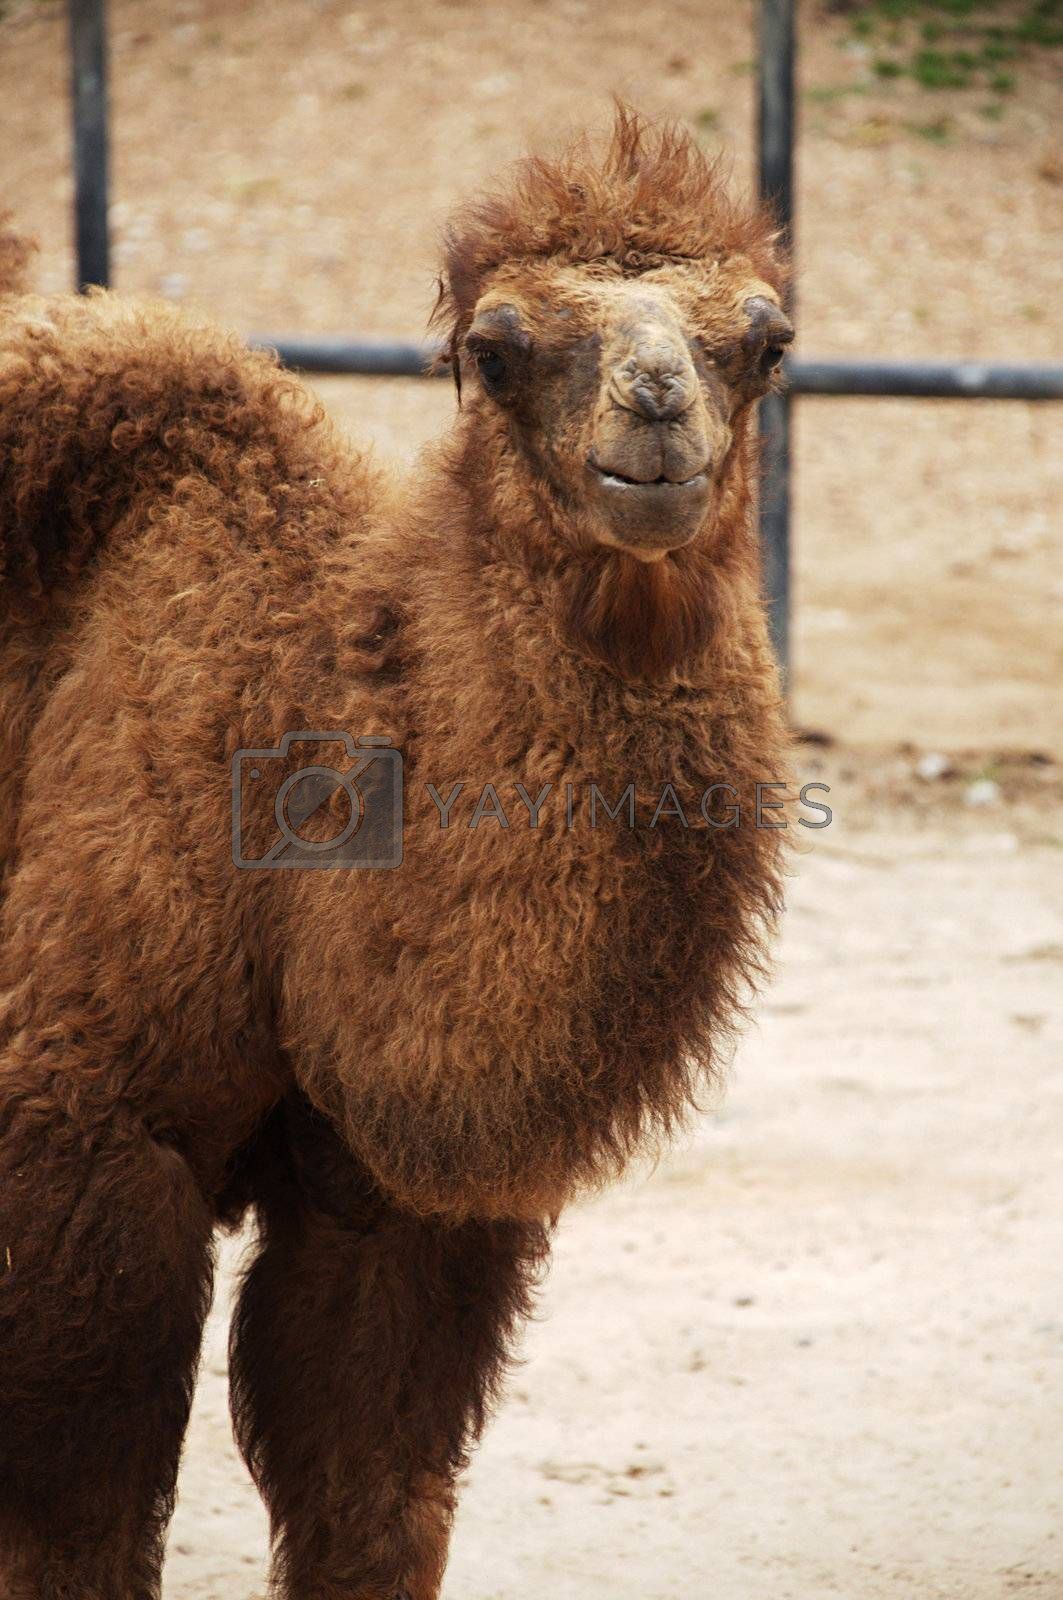 The Bactrian camel is a large even-toed ungulate native to the steppes of central Asia.